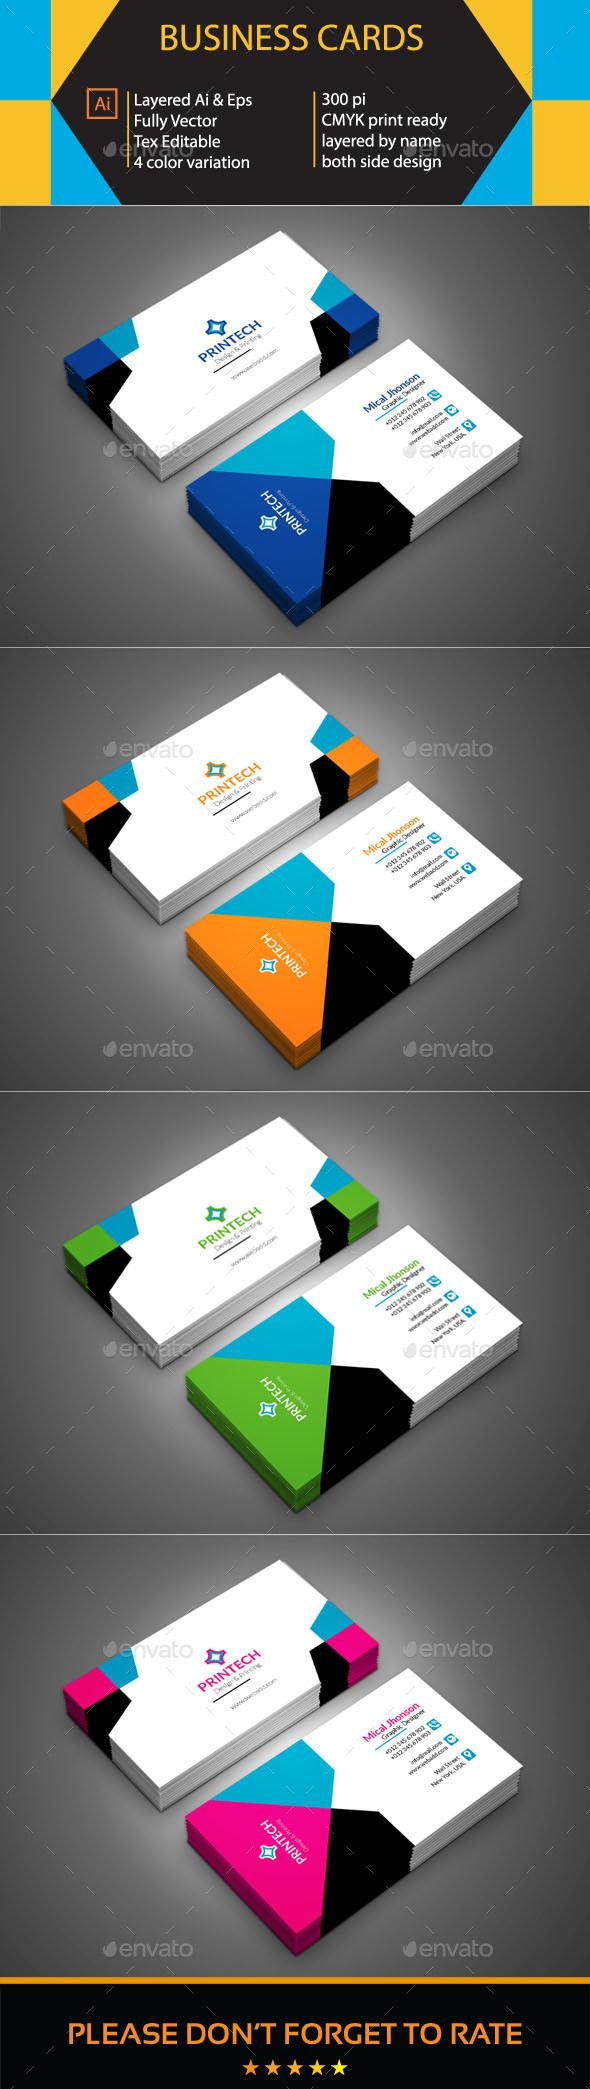 312 best business card images on Pinterest | Business card ...